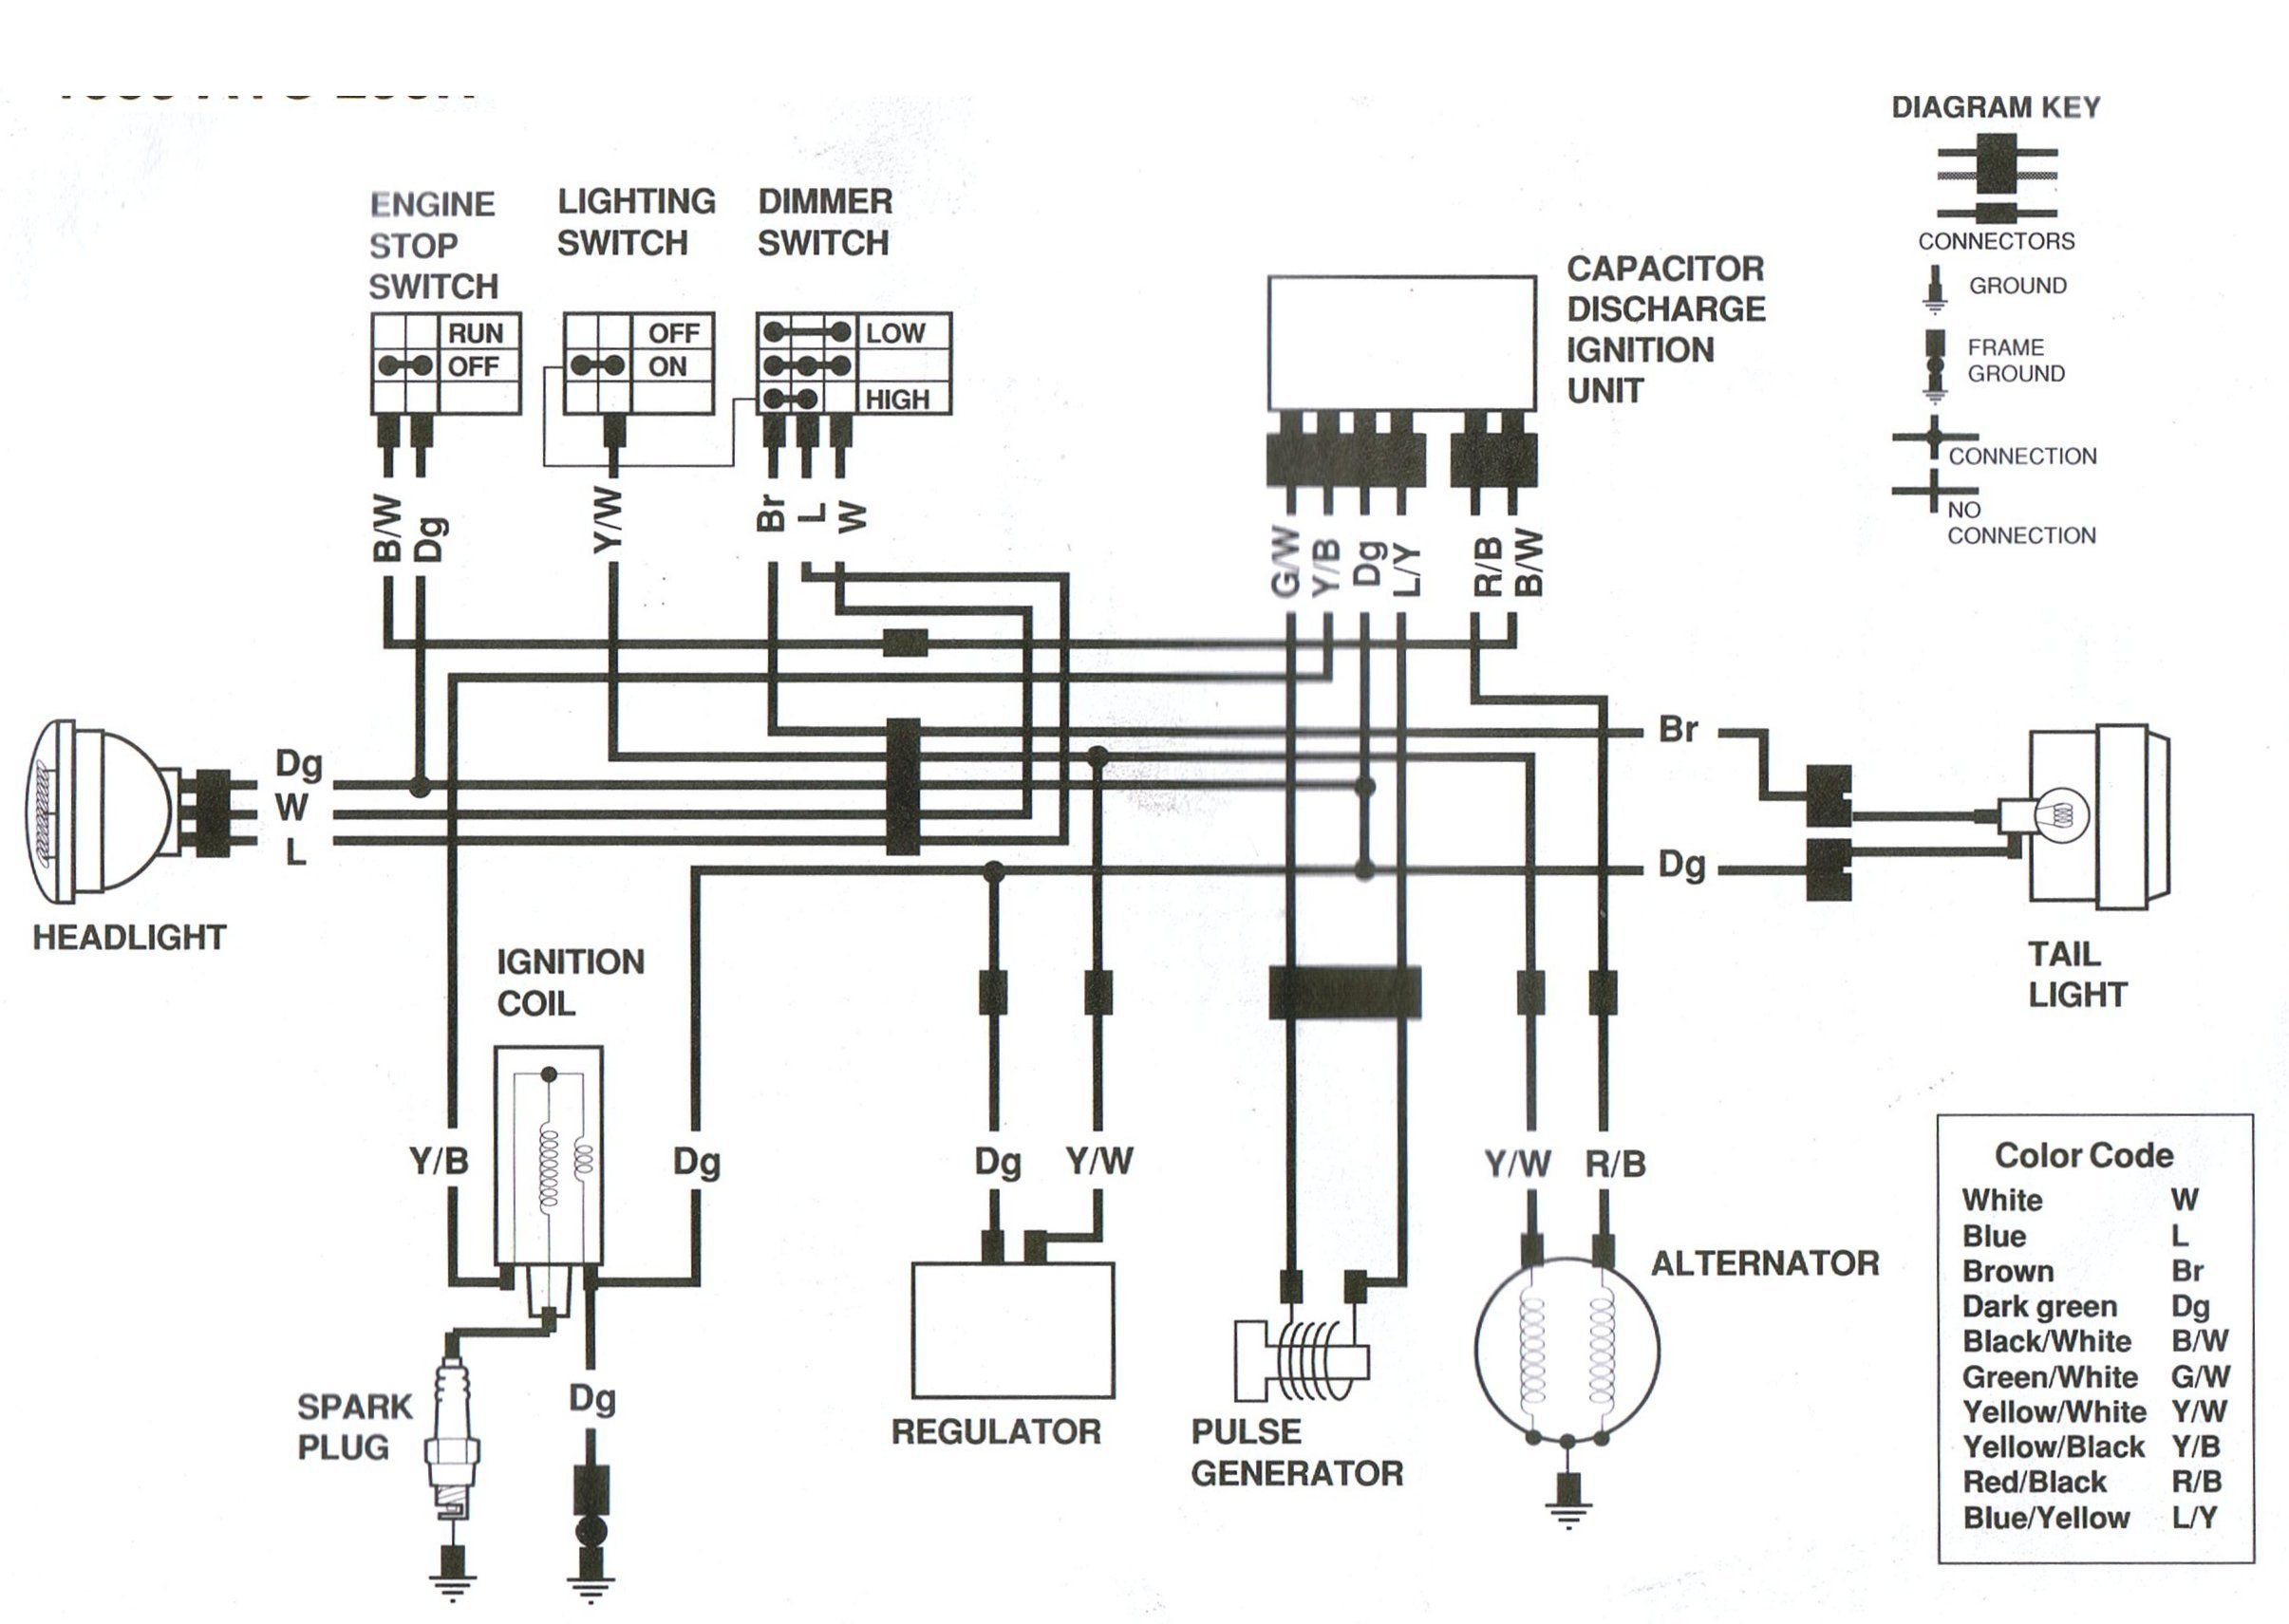 speaker wire schematic 250r wiring diagram. wire schematic #15